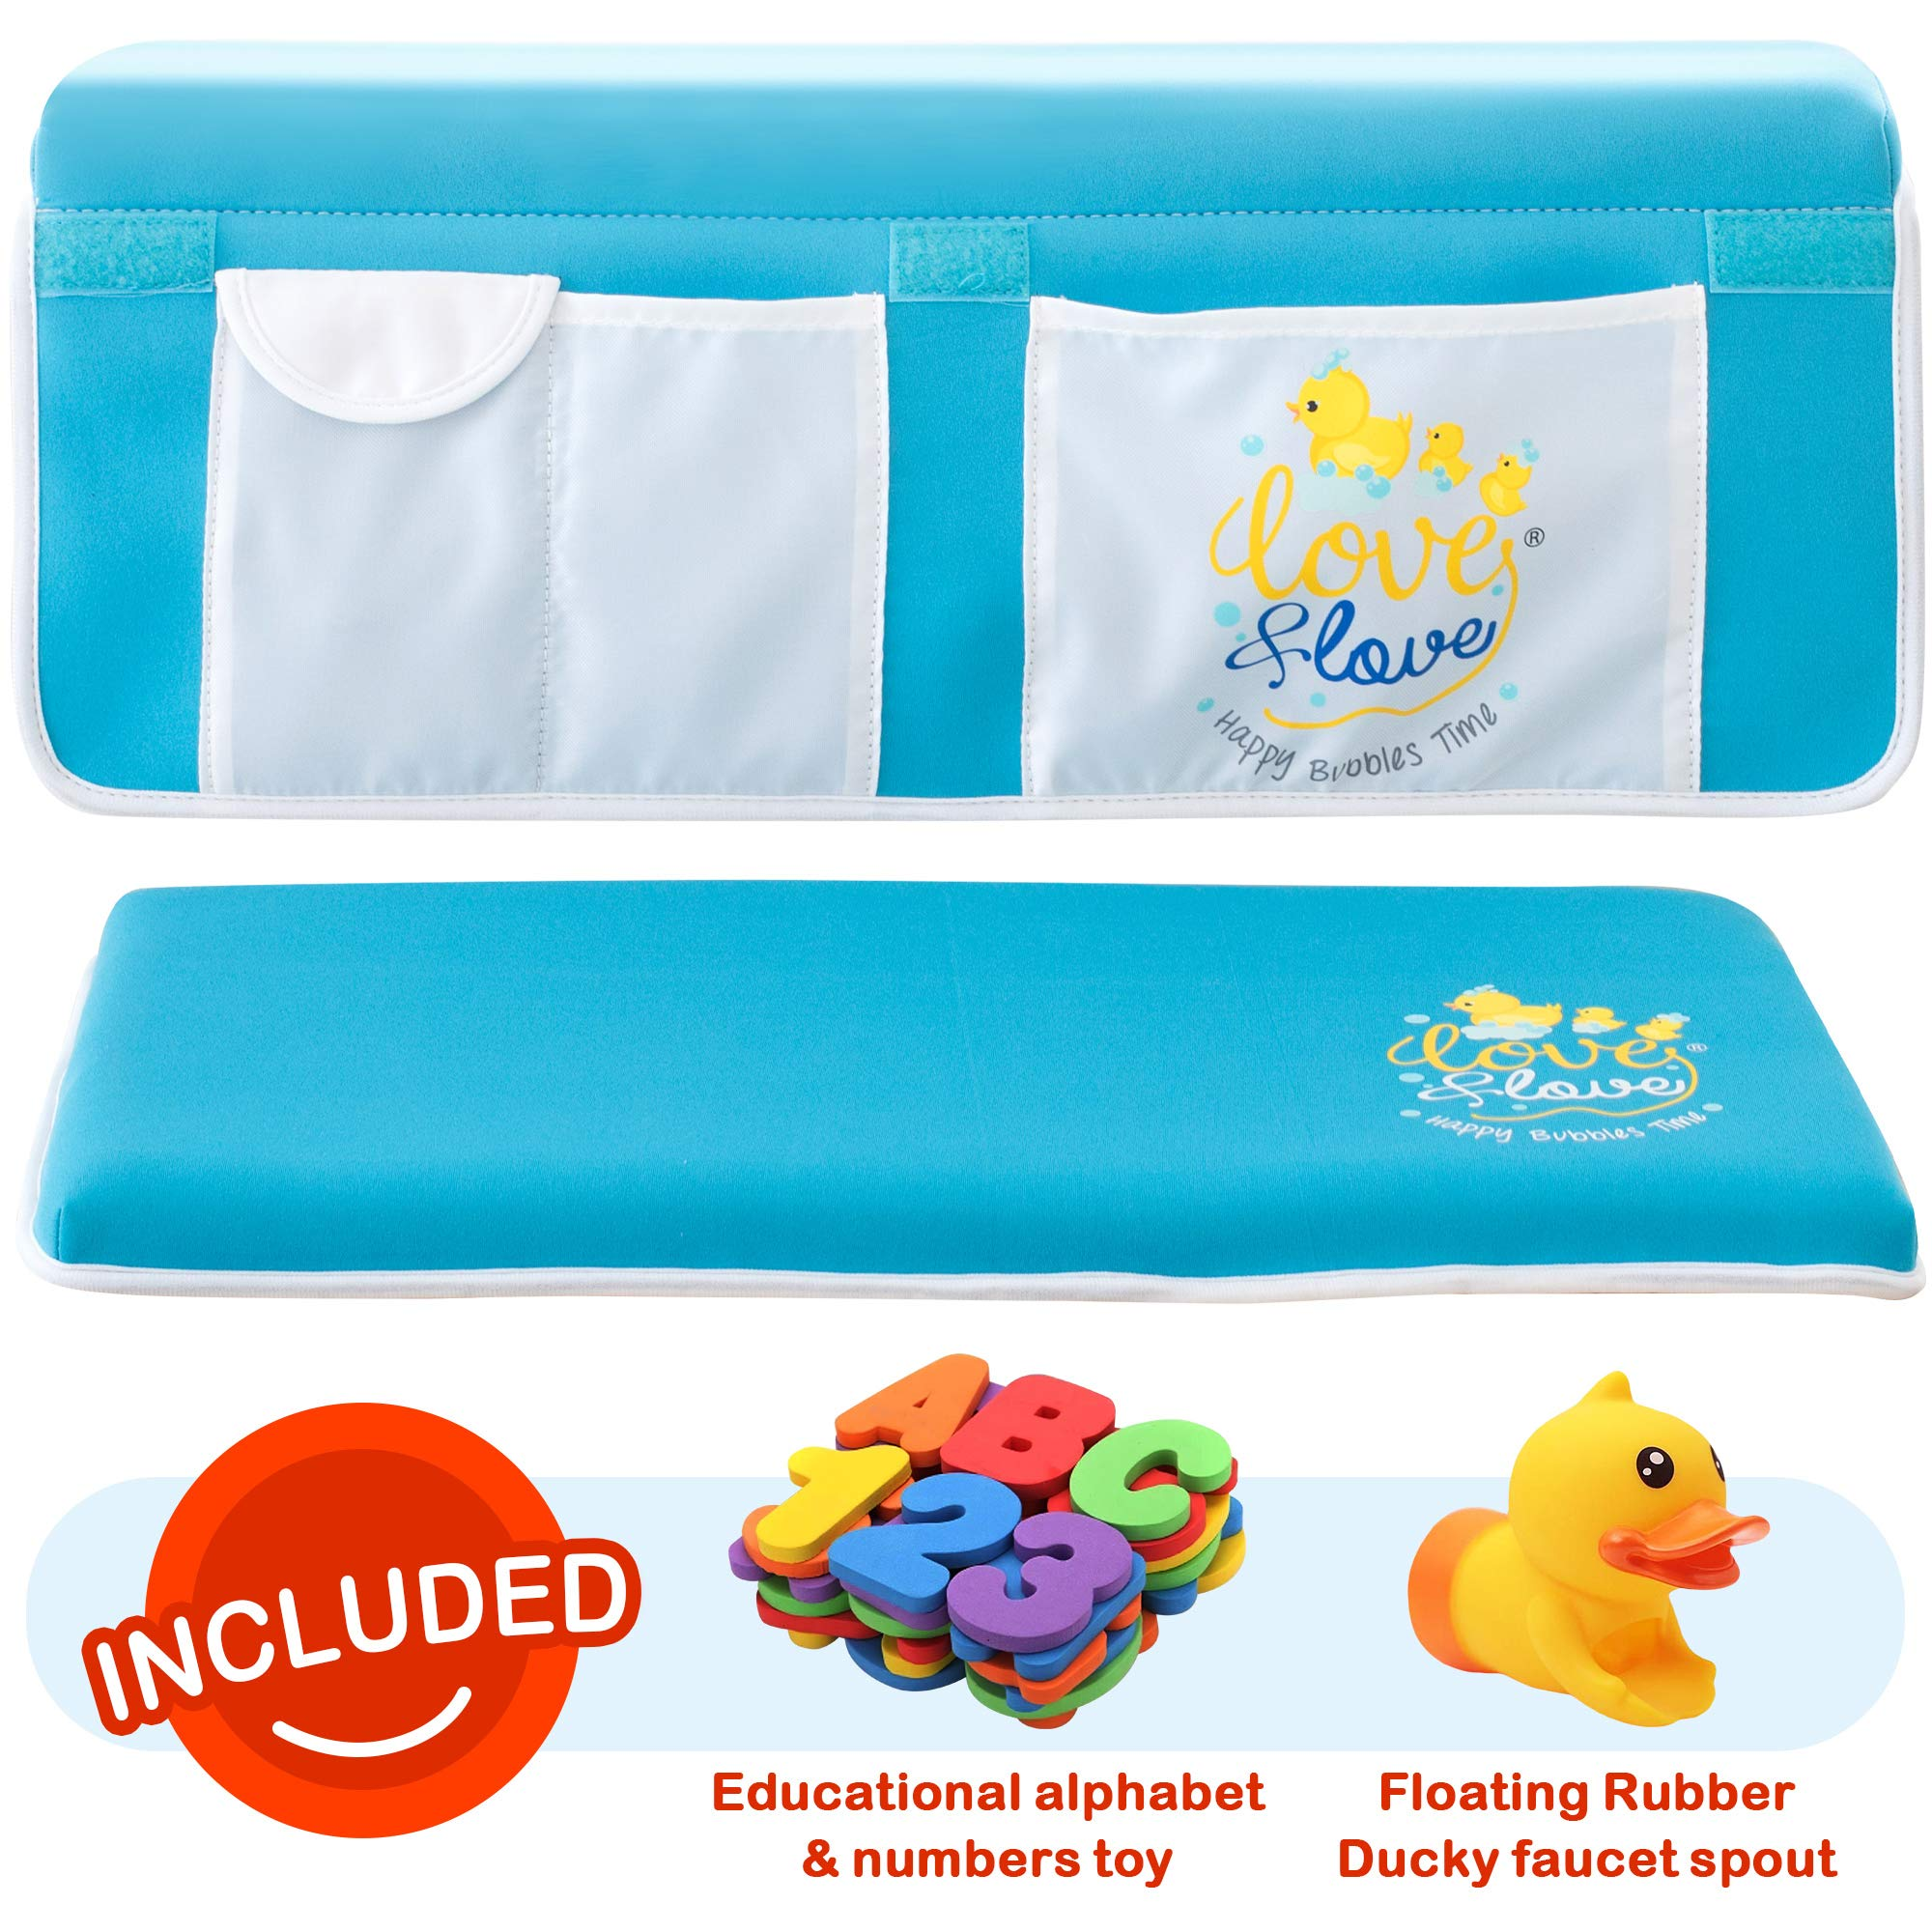 Bath Kneeler and Elbow Rest Pad Deluxe Aquamarine Blue Improved Bath Kneeler Set 2inch Think Wide Mat Bath Kneeler Tub Bathing 2 XL Reinforced Double Stitched Mesh Netting Toy Organizer Shower Gift by LOVE & LOVE